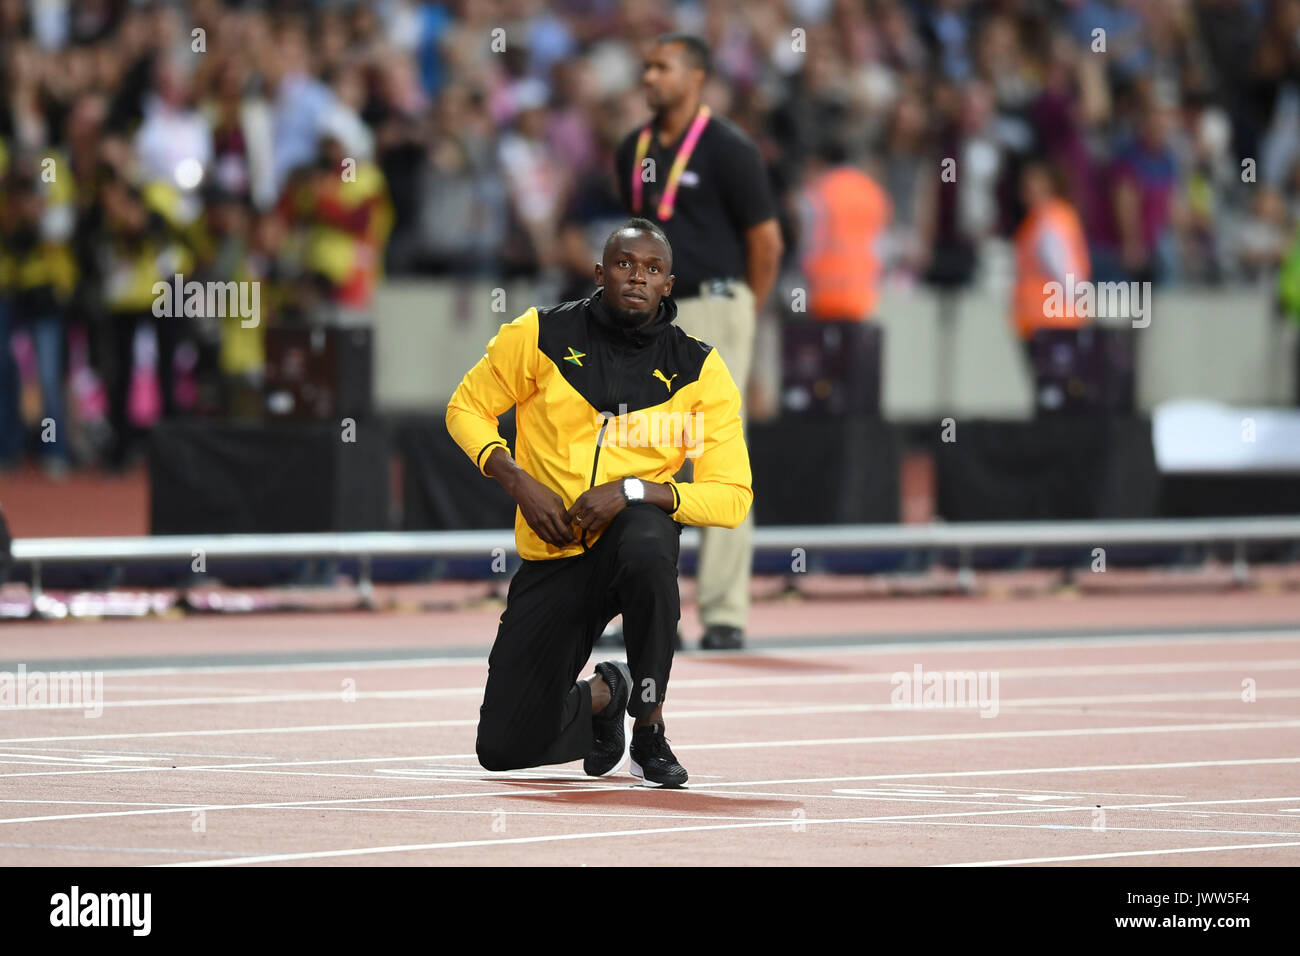 London, UK.  13 August 2017. A tearful Usain Bolt bids goodbye after ending his athletics career. Final session at the London Stadium, on day ten of The IAAF World Championships London 2017.  Credit: Stephen Chung / Alamy Live News - Stock Image